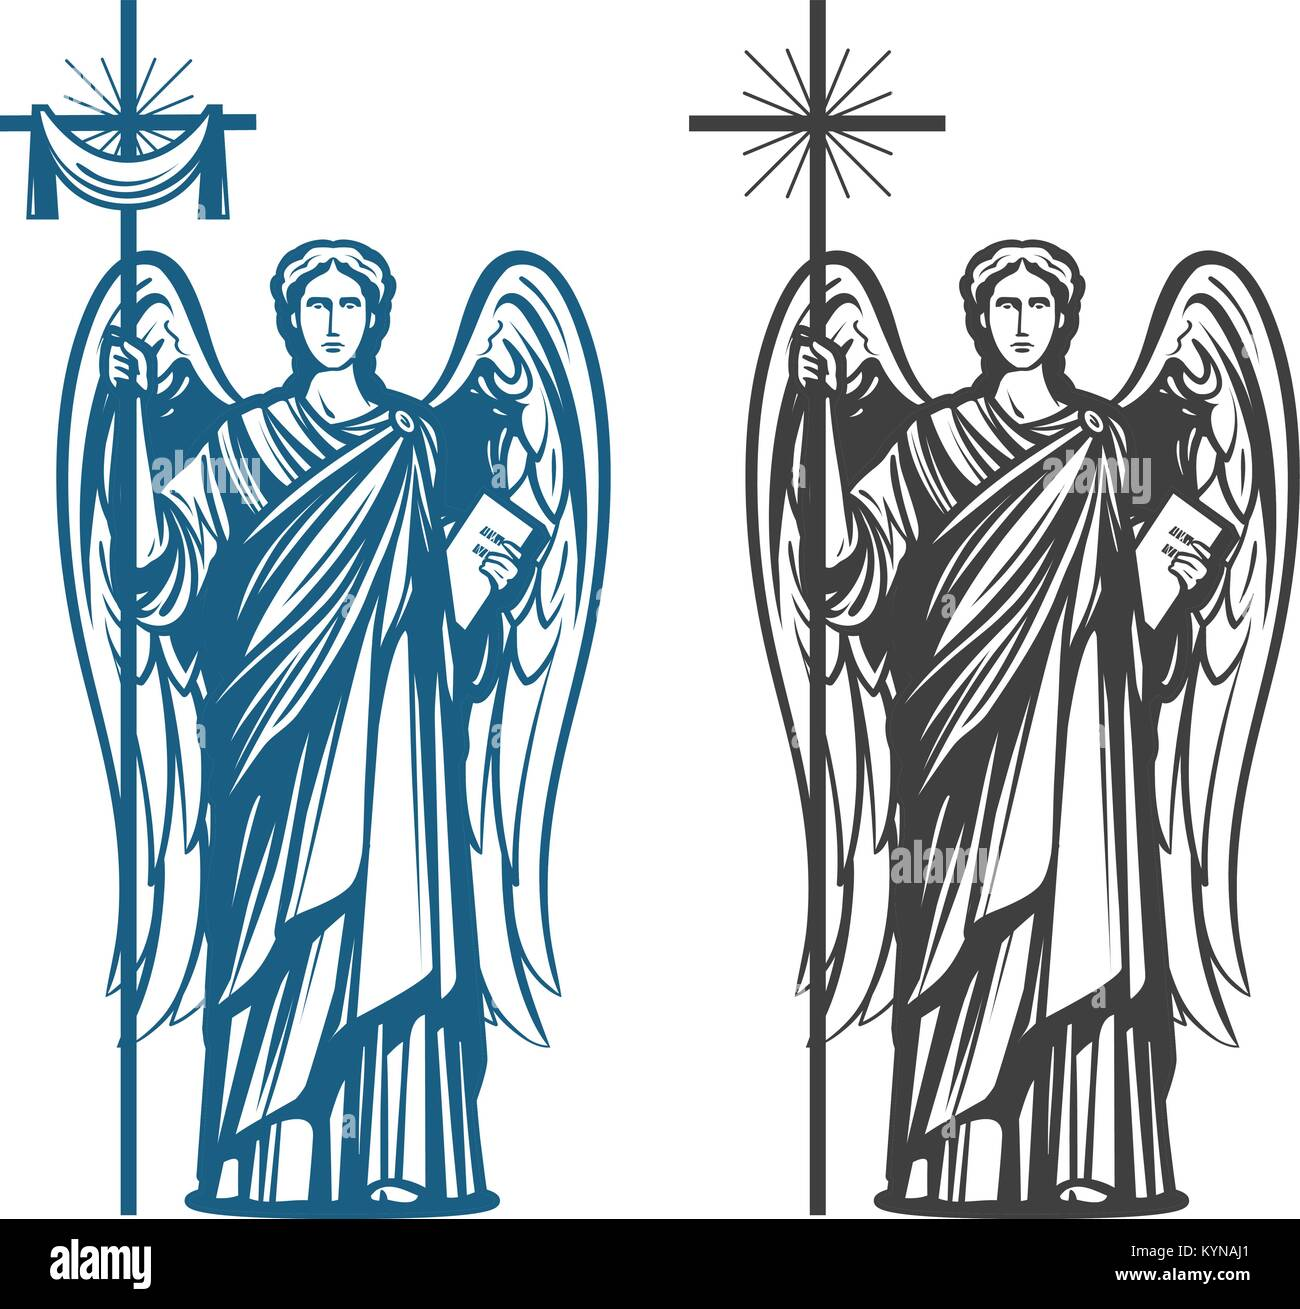 Angel, Archangel with wings. Bible, religion, belief, worship concept. Vintage sketch vector illustration - Stock Image